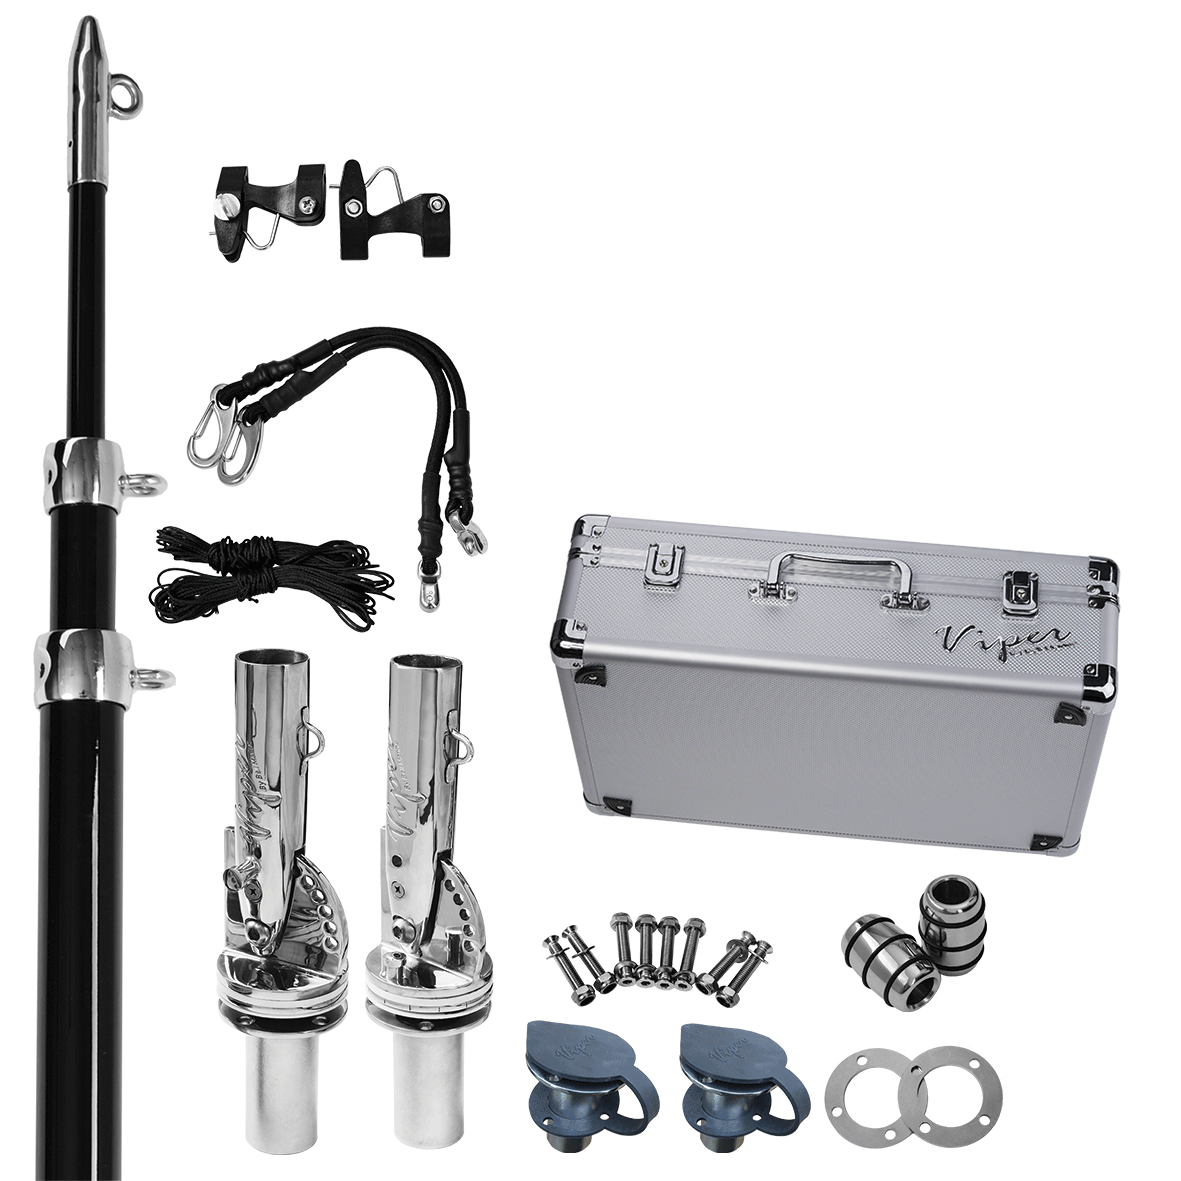 Haines Hunter, Viper Pro Series II Deck Mount Removable Telescopic Outrigger Bundle